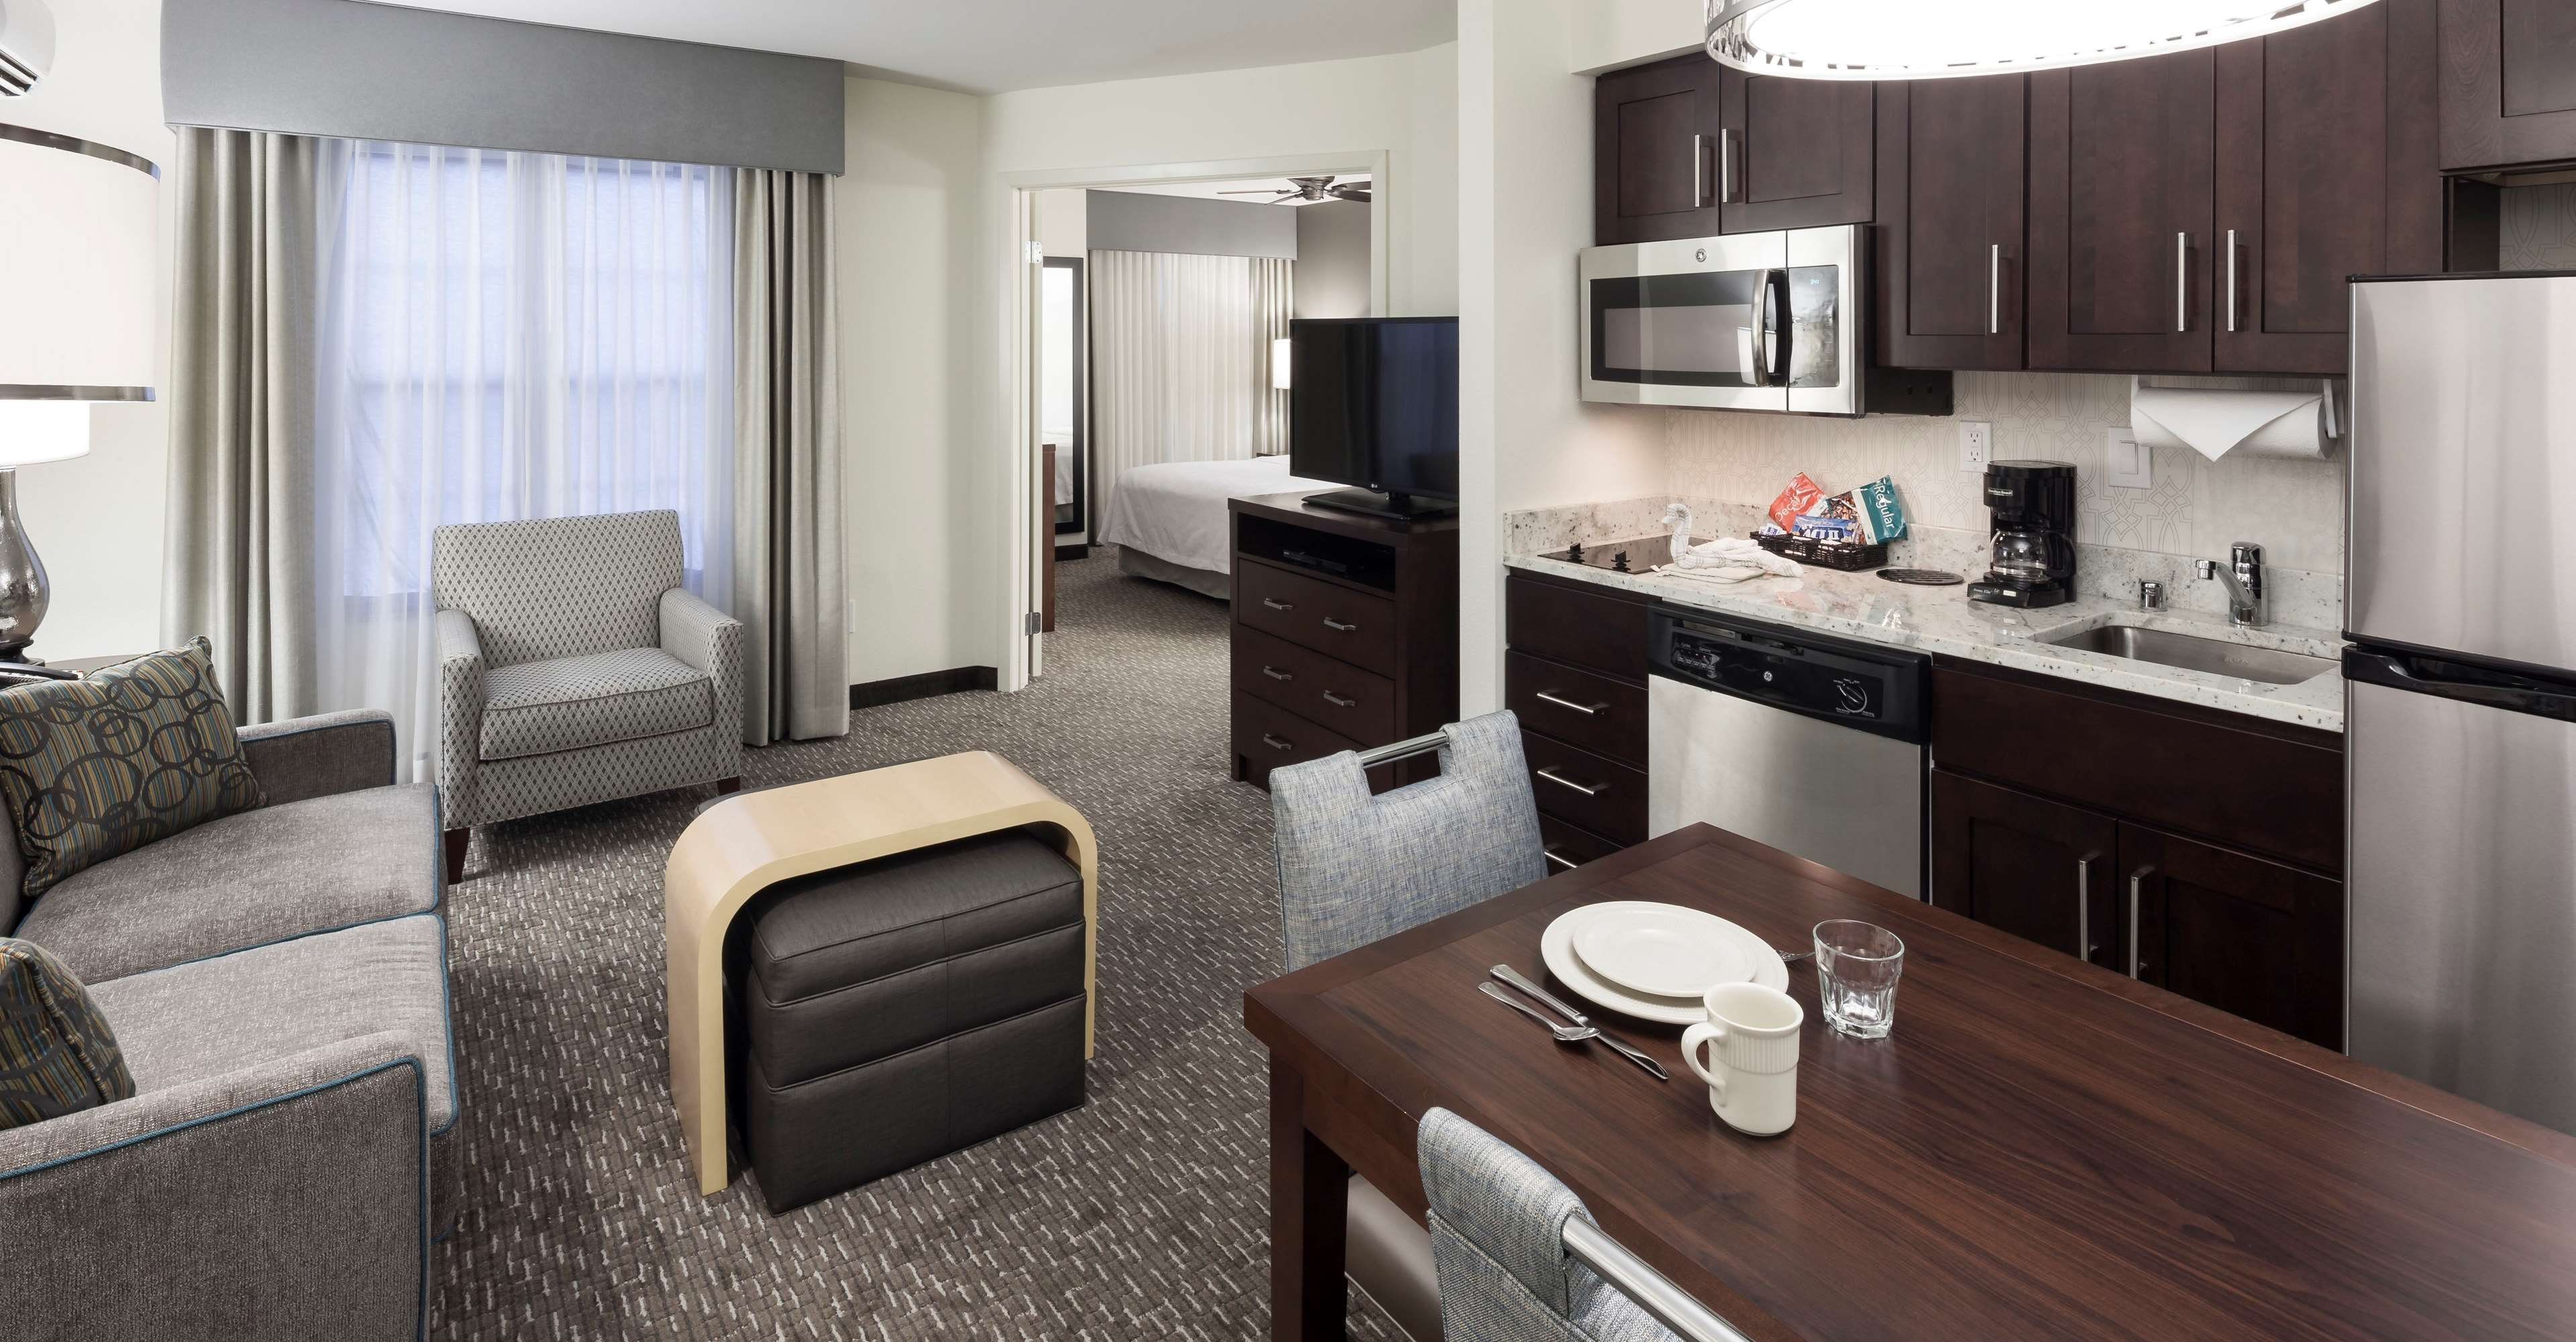 Homewood Suites by Hilton San Jose Airport-Silicon Valley image 12